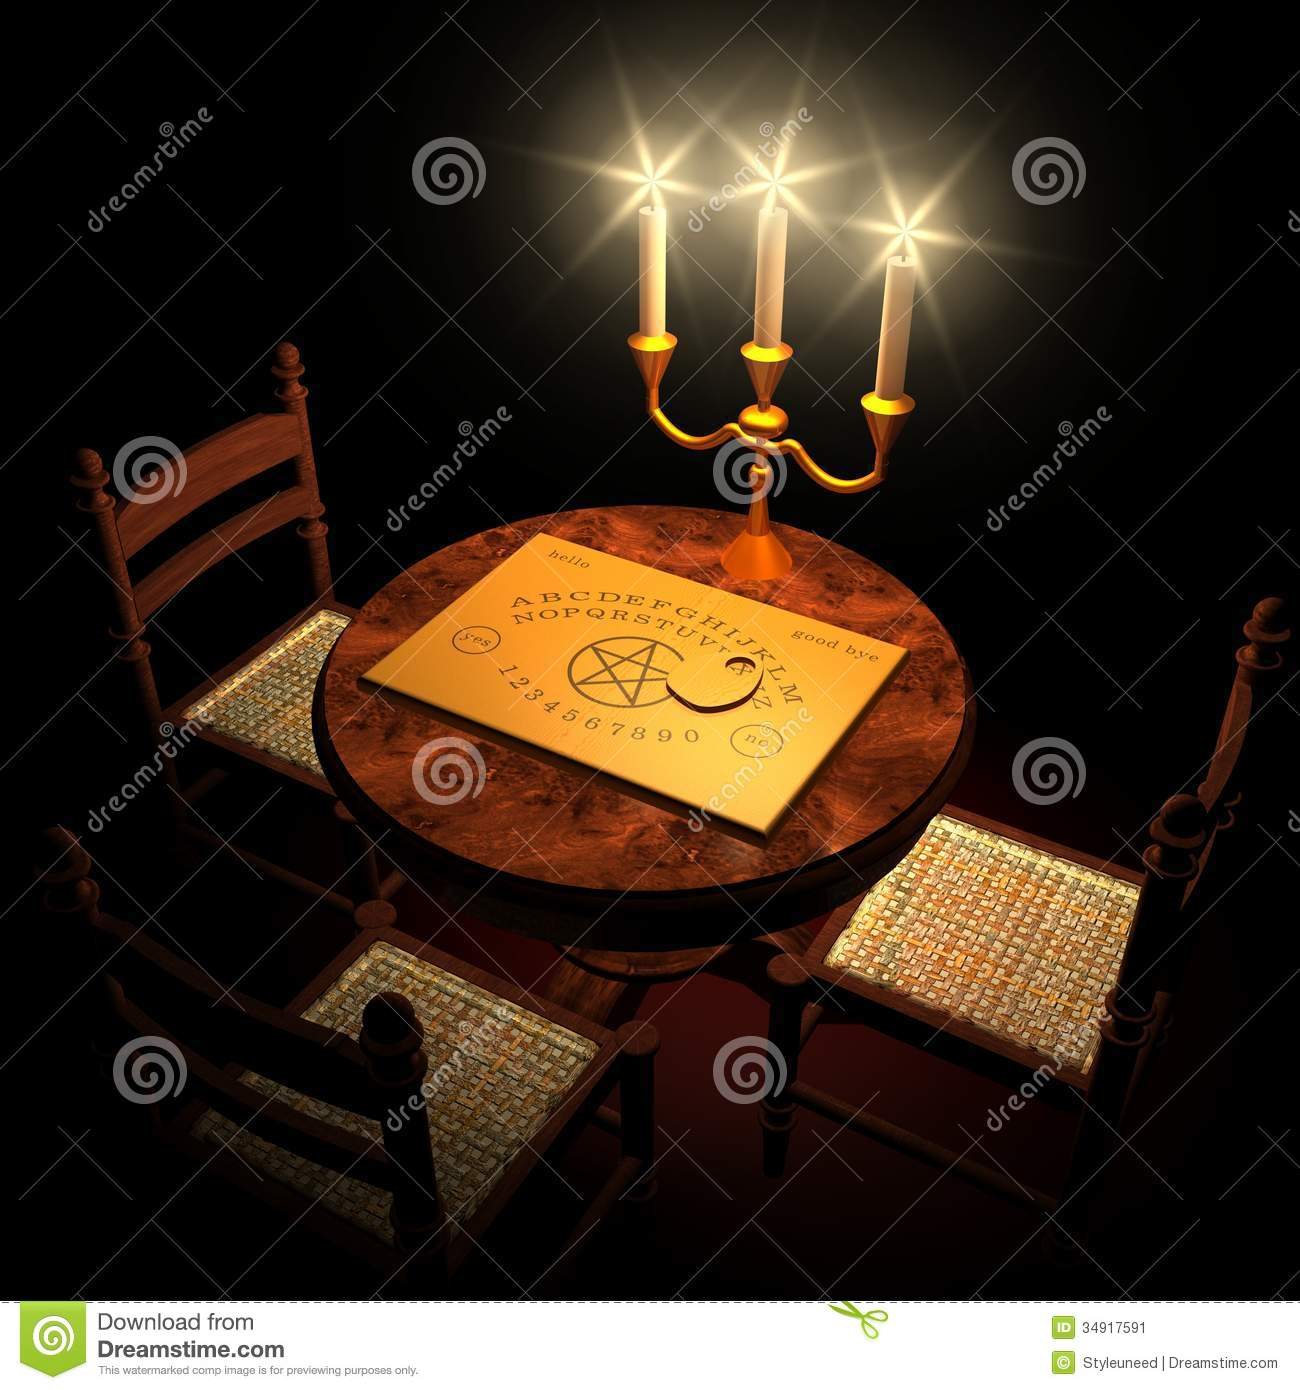 Table With Ouija Board And Candles Stock Image - Image: 34917591